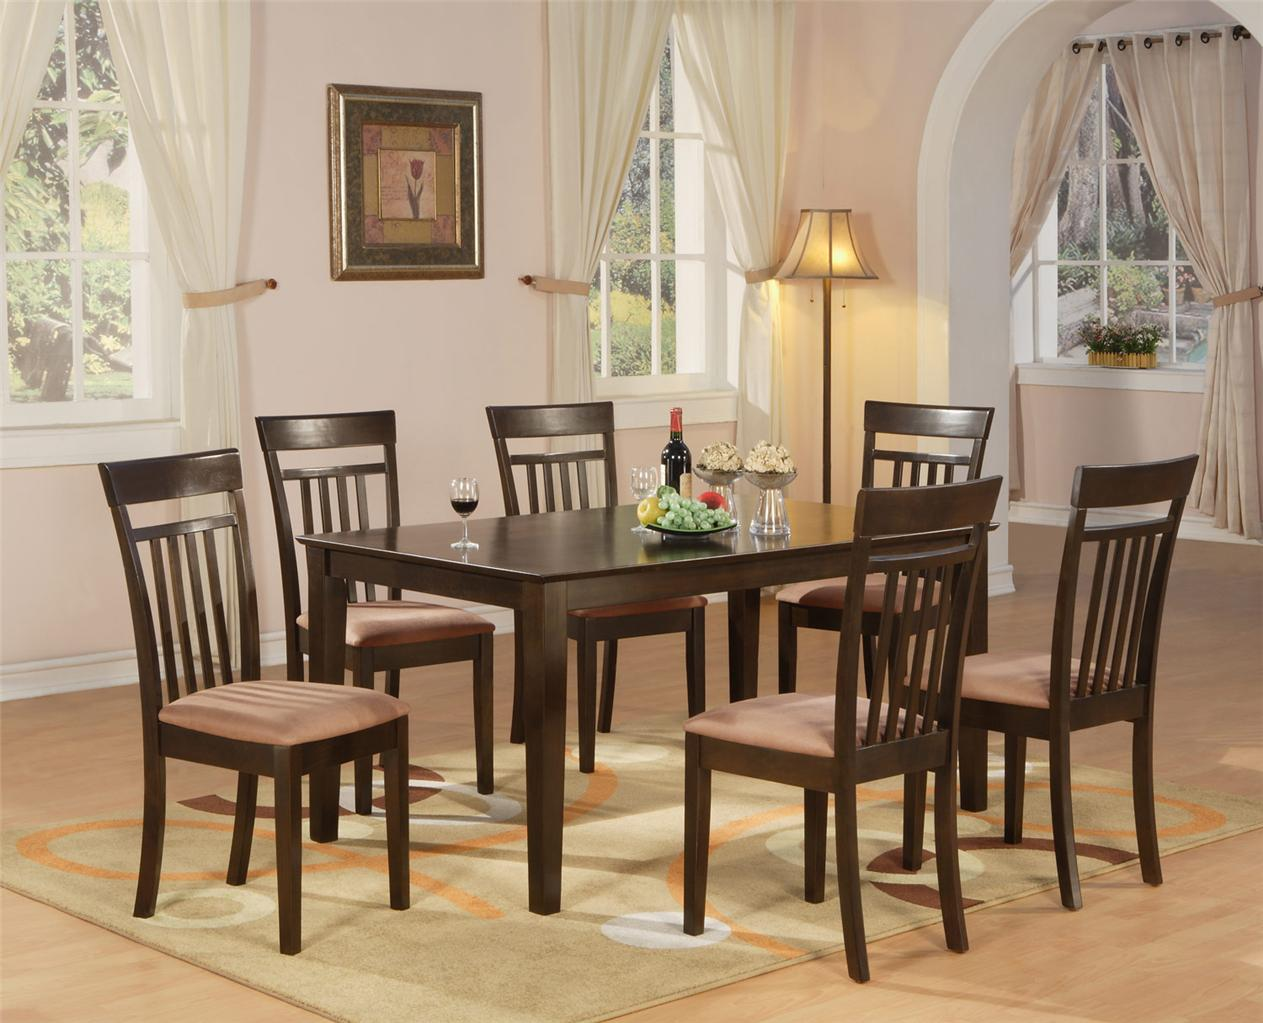 7 pc dining room dinette kitchen set table and 6 chairs ebay for Kitchen dining room furniture